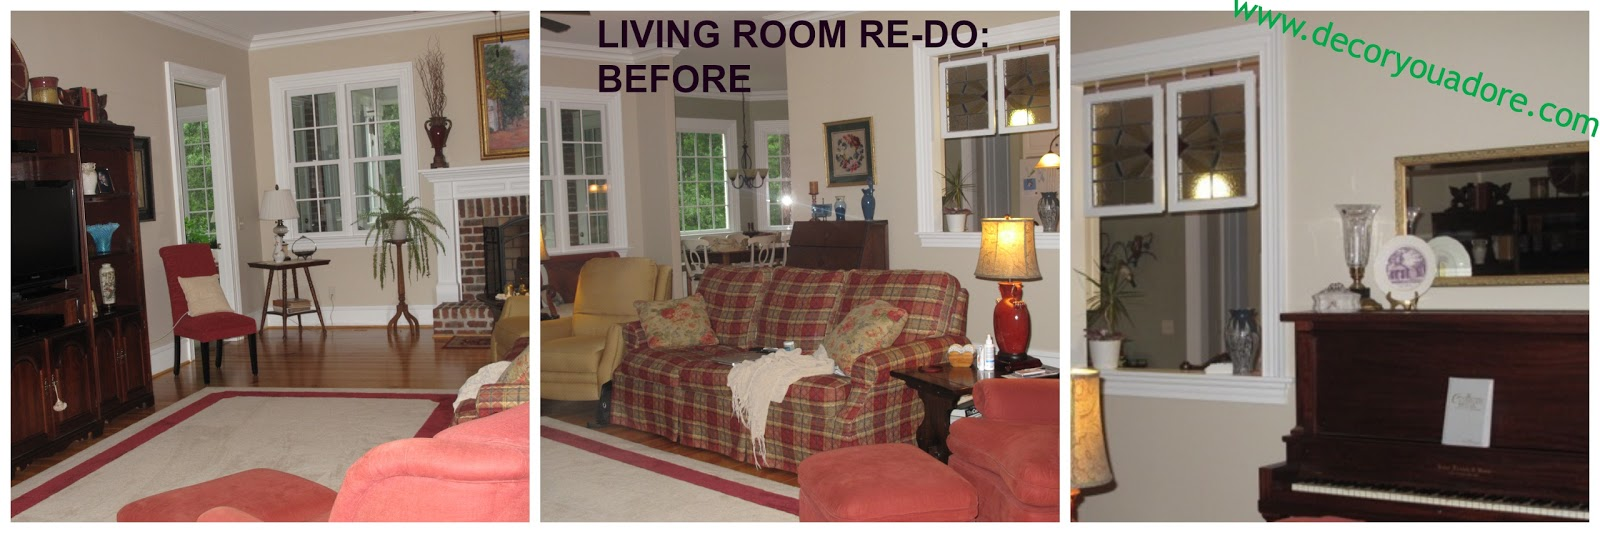 Decor You Adore Family Room Interior Redesign Working